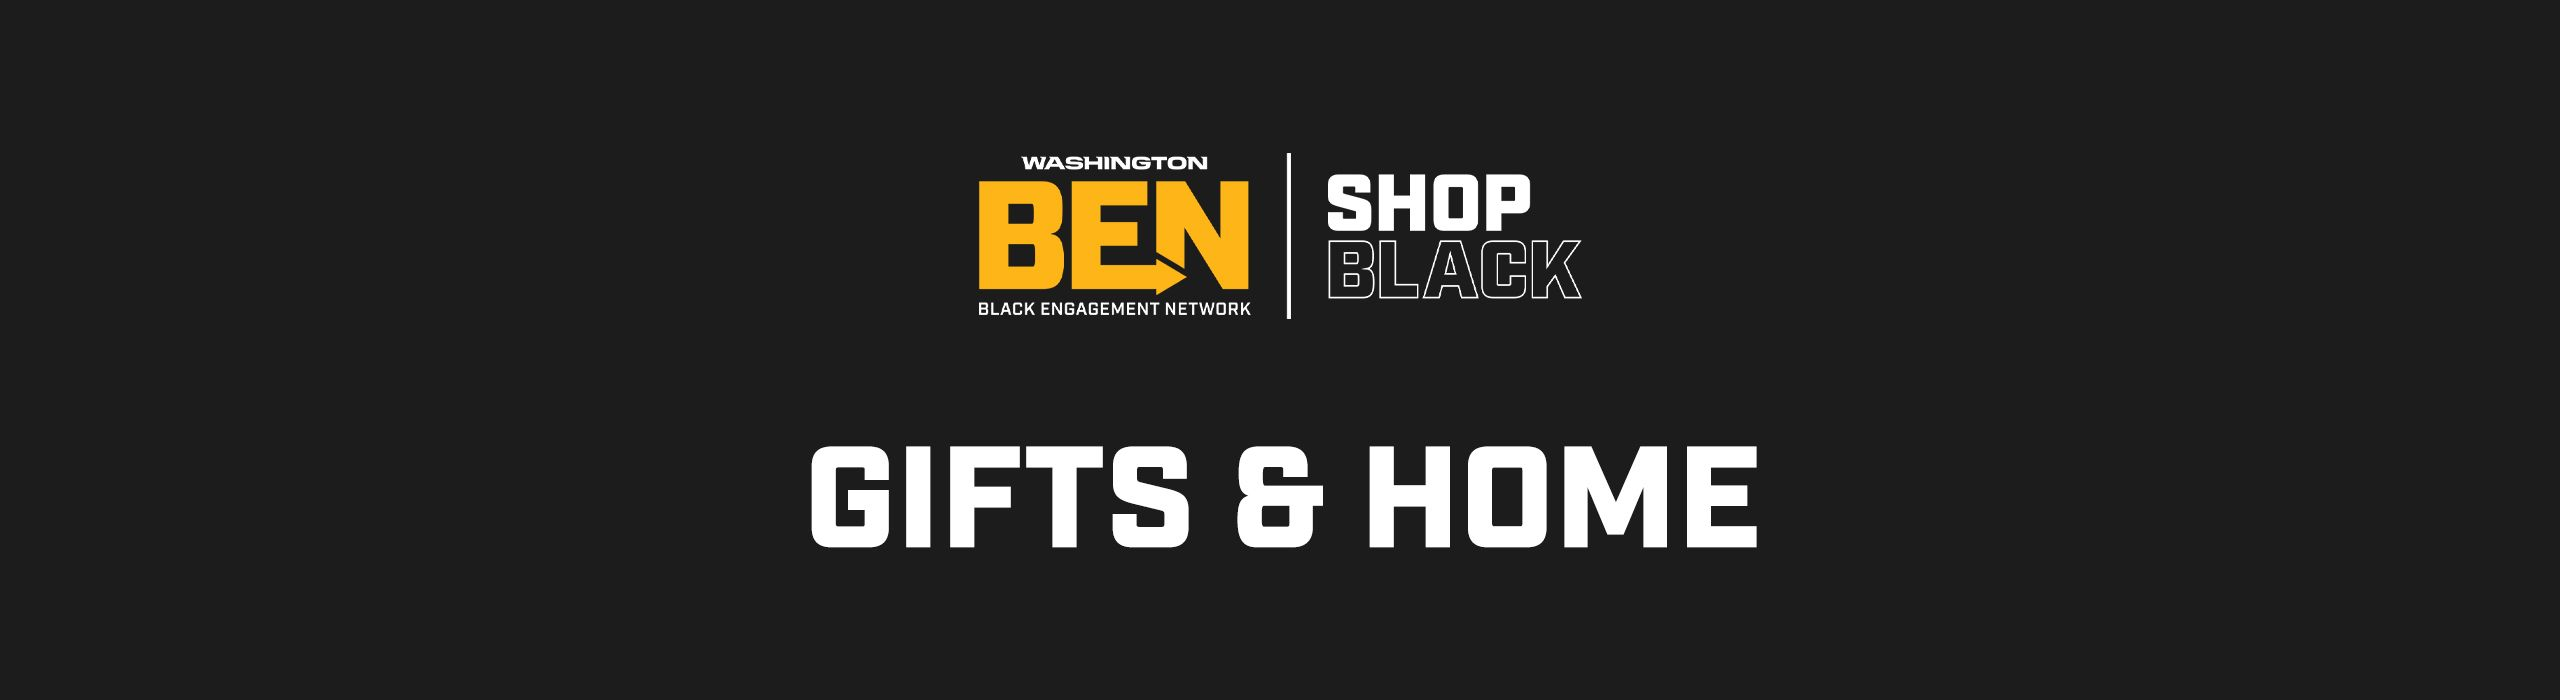 2020BEN_ShopBlack_CategoryPageHeader_Gifts+Home